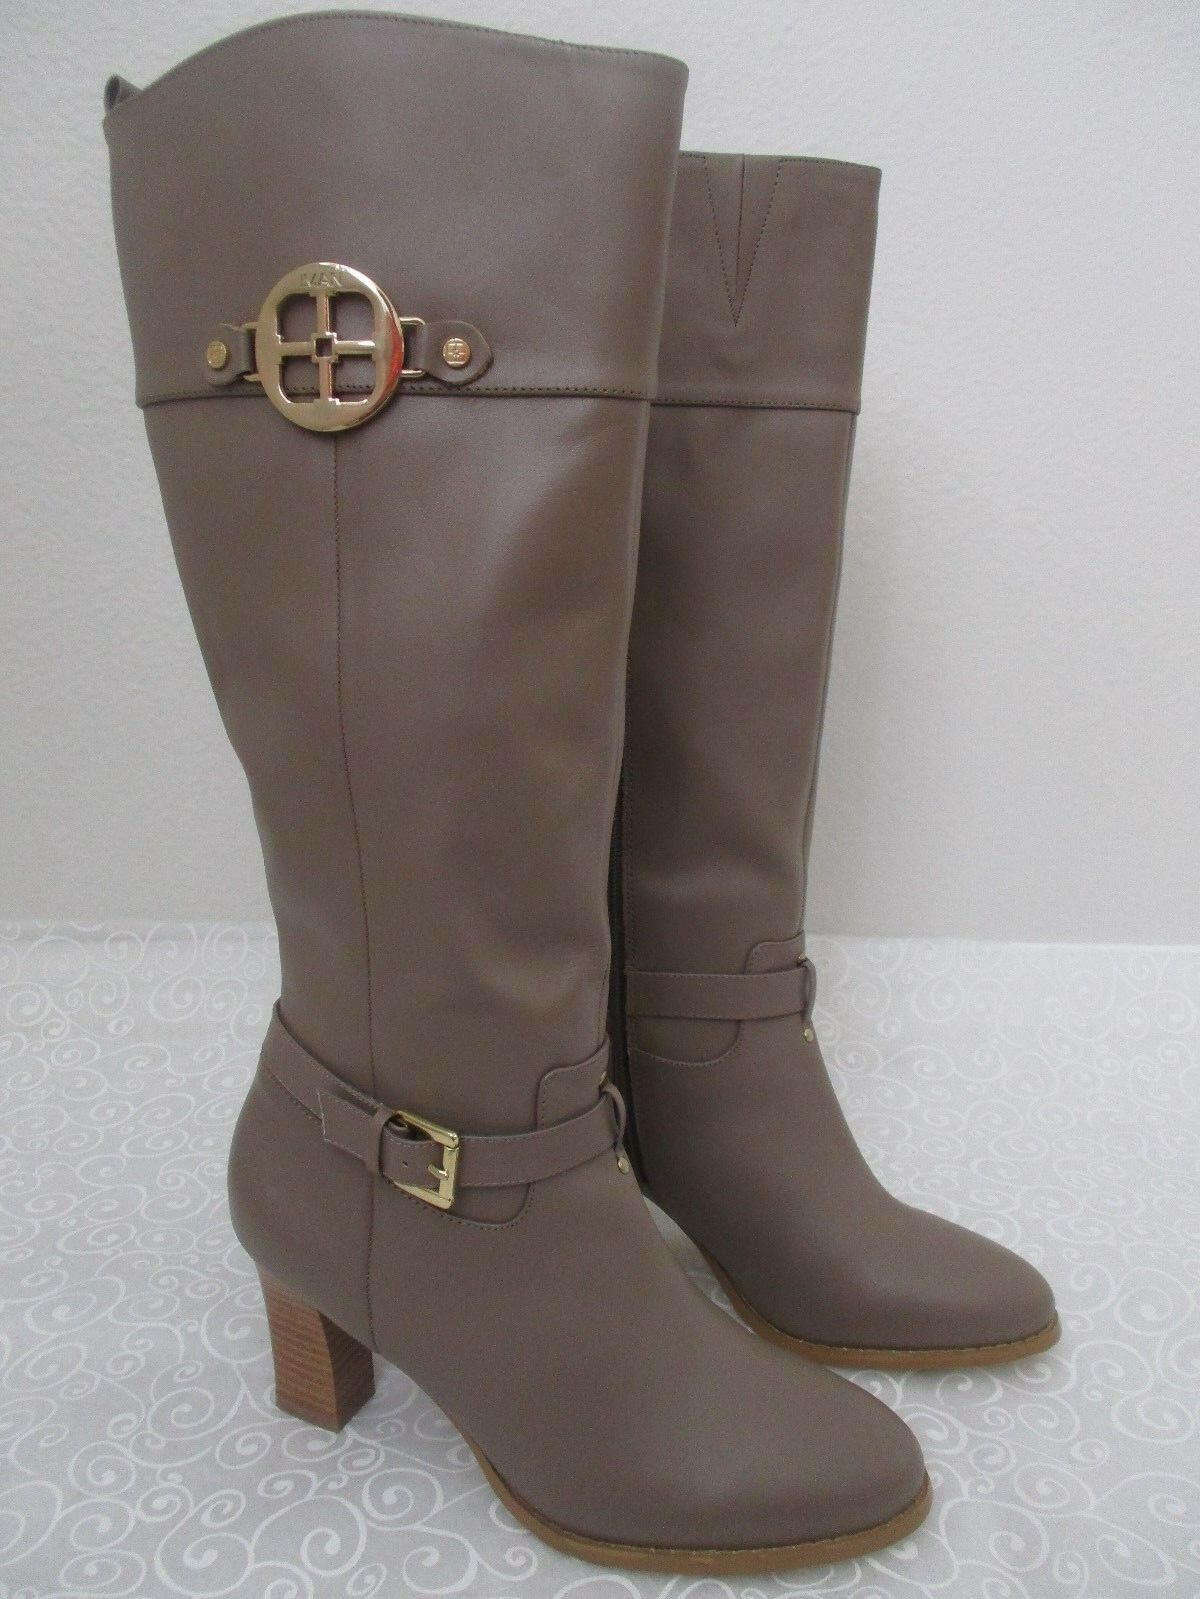 169  IMAN TAUPE LEATHER KNEE HIGH BOOTS SIZE 8 1 2 W - NEW